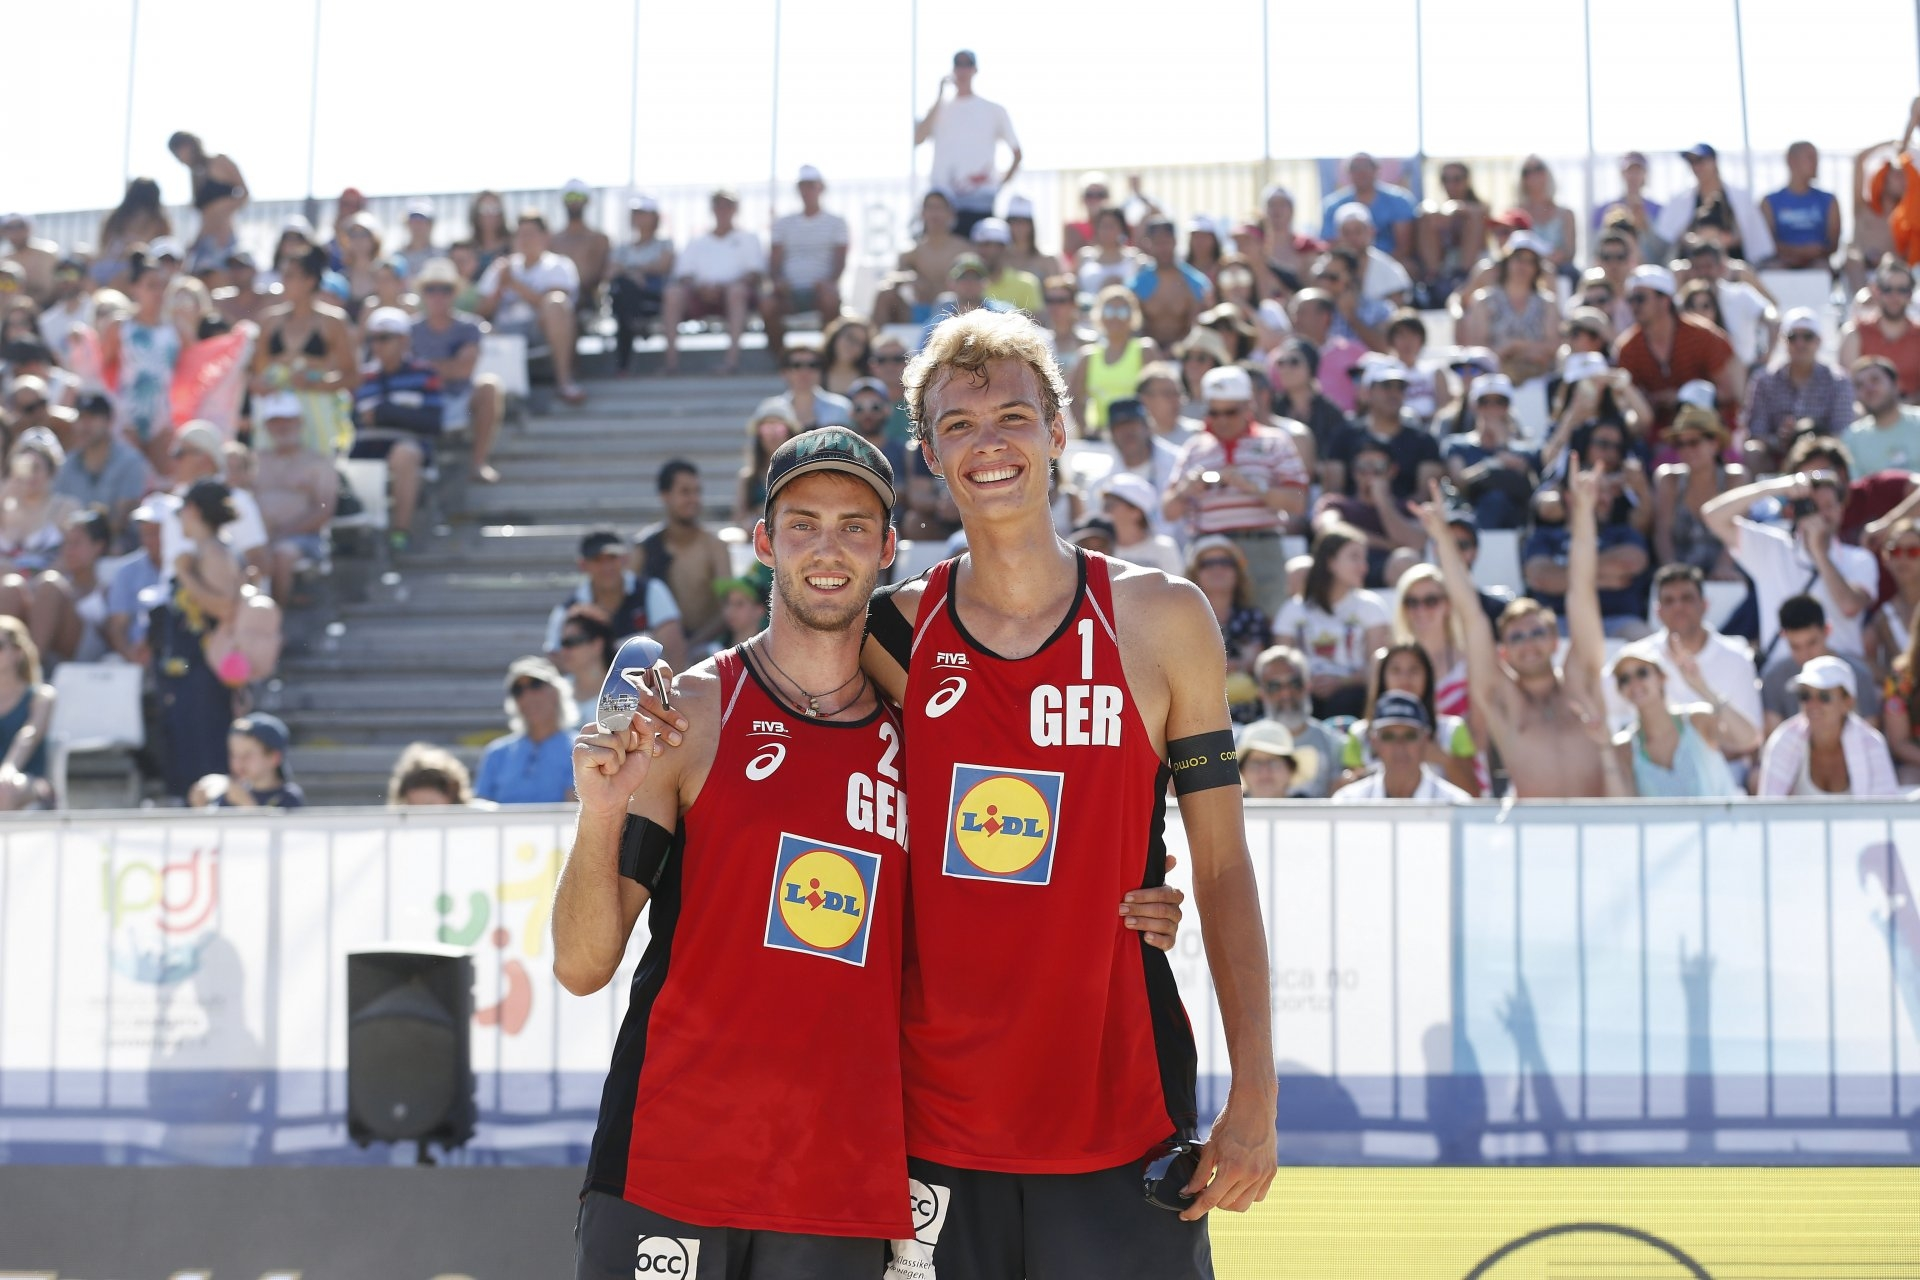 Thole and Wickler will represent the host country in Hamburg